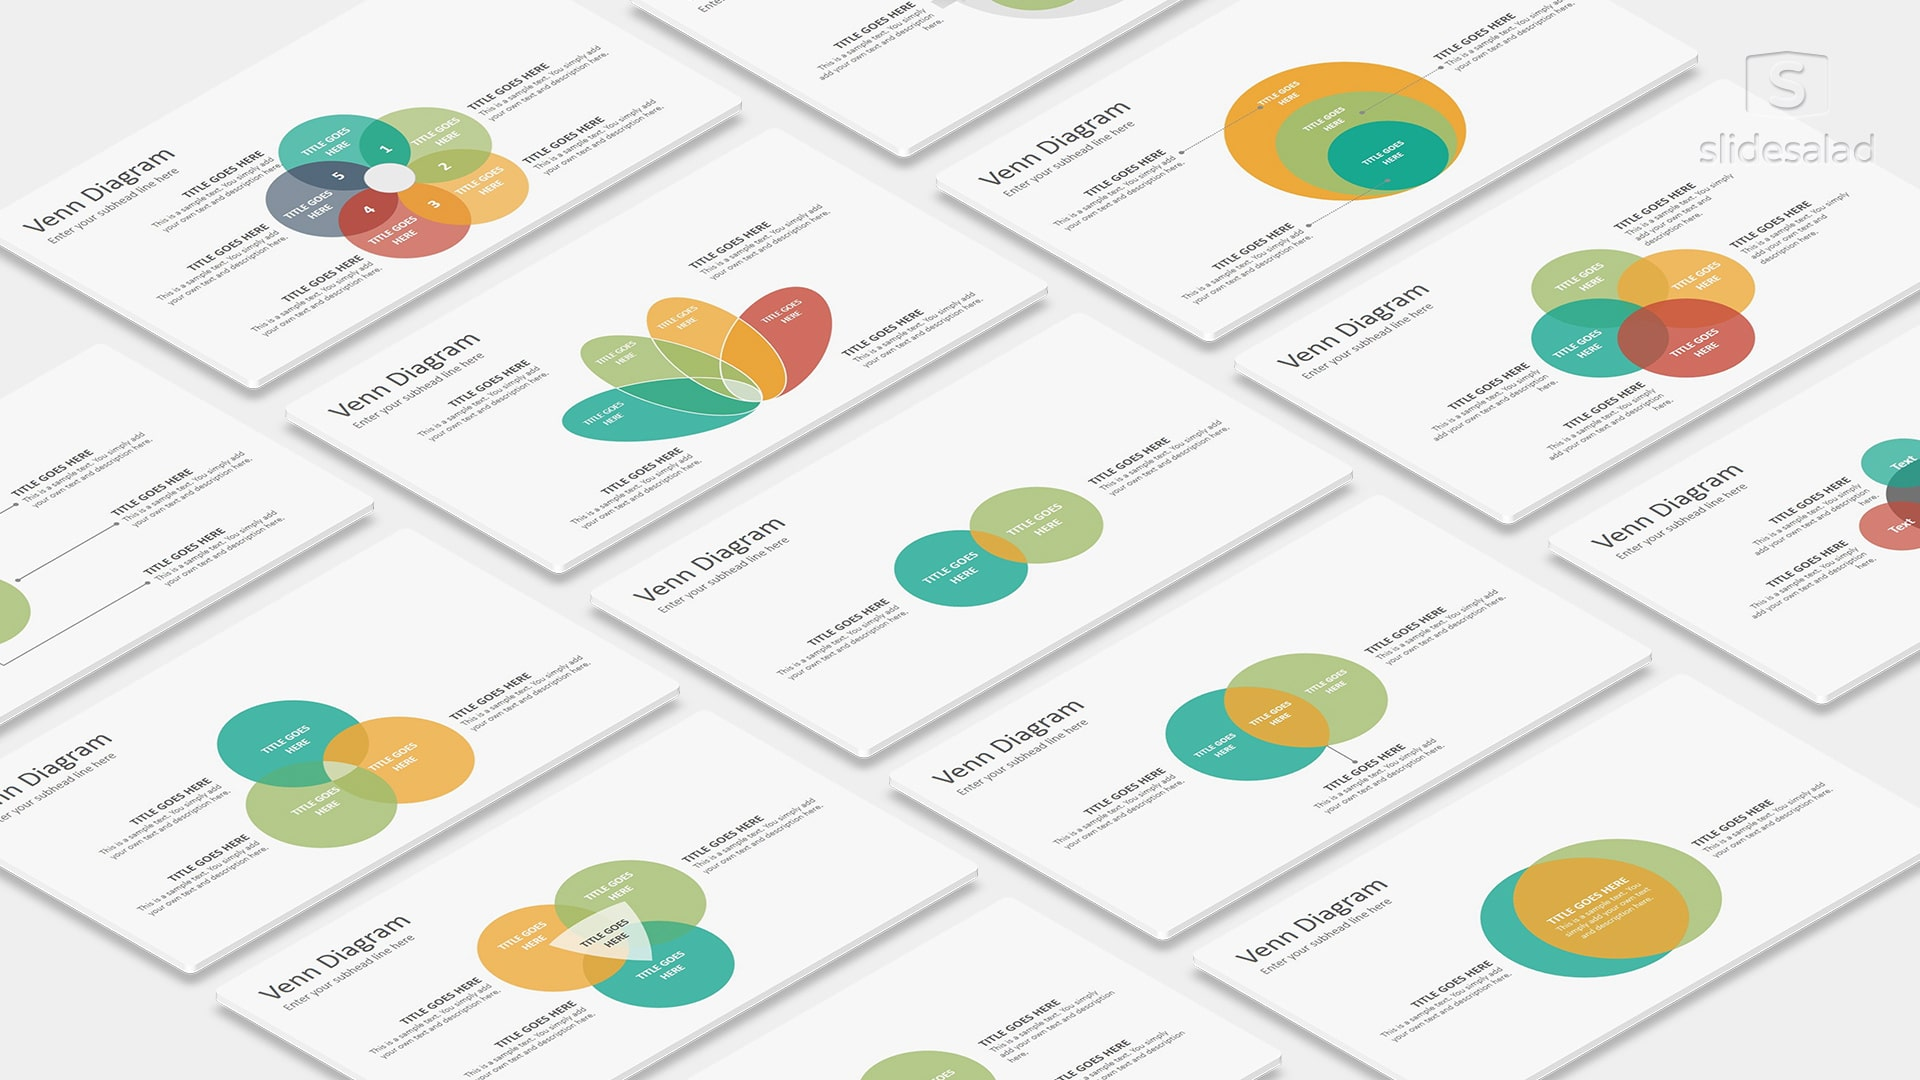 Venn Diagrams PowerPoint Presentation Template – Most Popular Infographic Themes